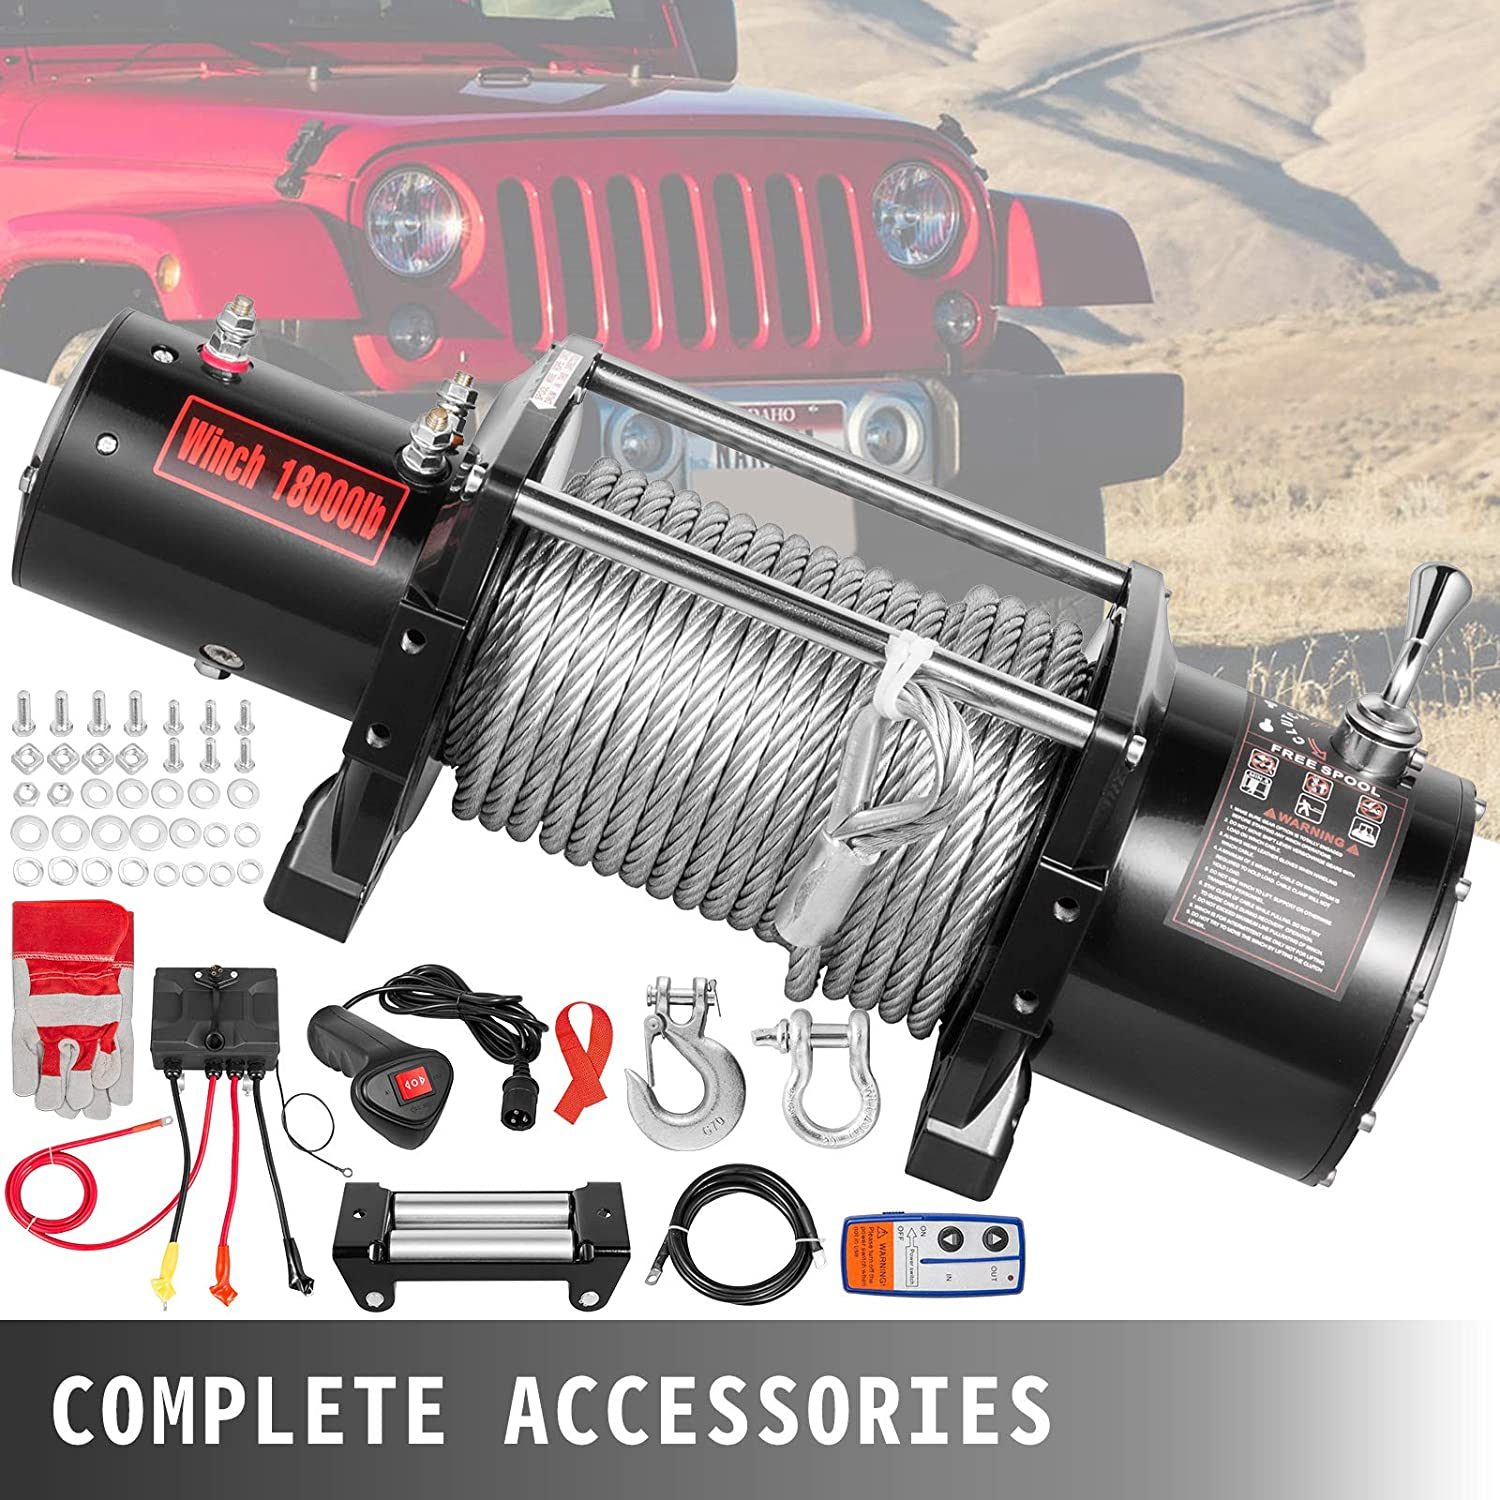 VEVOR Truck Winch 18000Ibs Electric Winch 75ft//22.8m Cable Steel 12V Power Winch Jeep Winch with Wireless Remote Control and Powerful Motor for UTV ATV /& Jeep Truck Wrangler Accessories in Car Lift